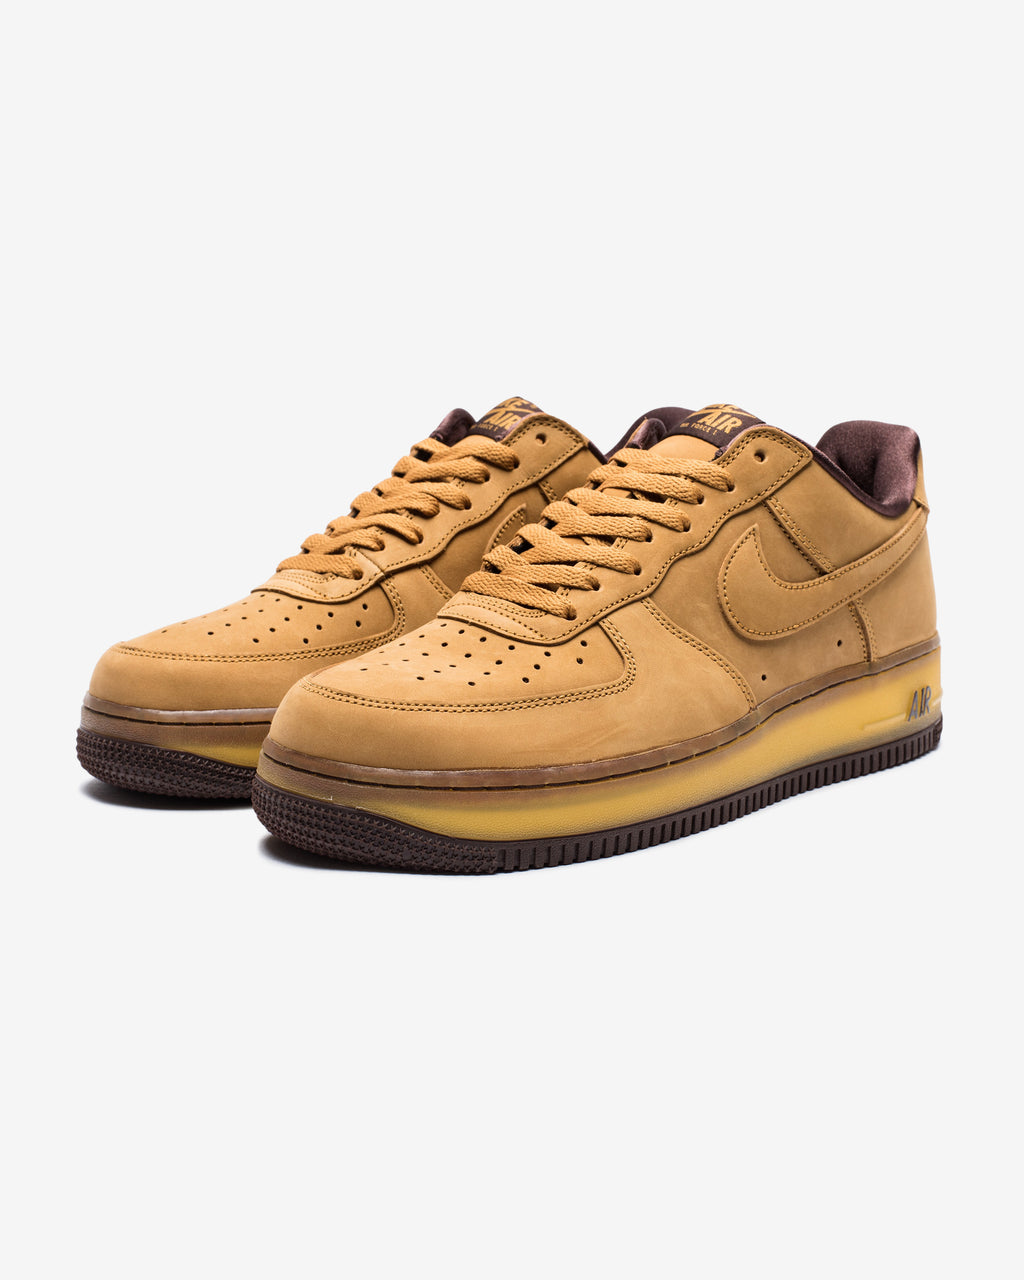 AIR FORCE 1 LOW RETRO SP - WHEAT/ DARKMOCHA